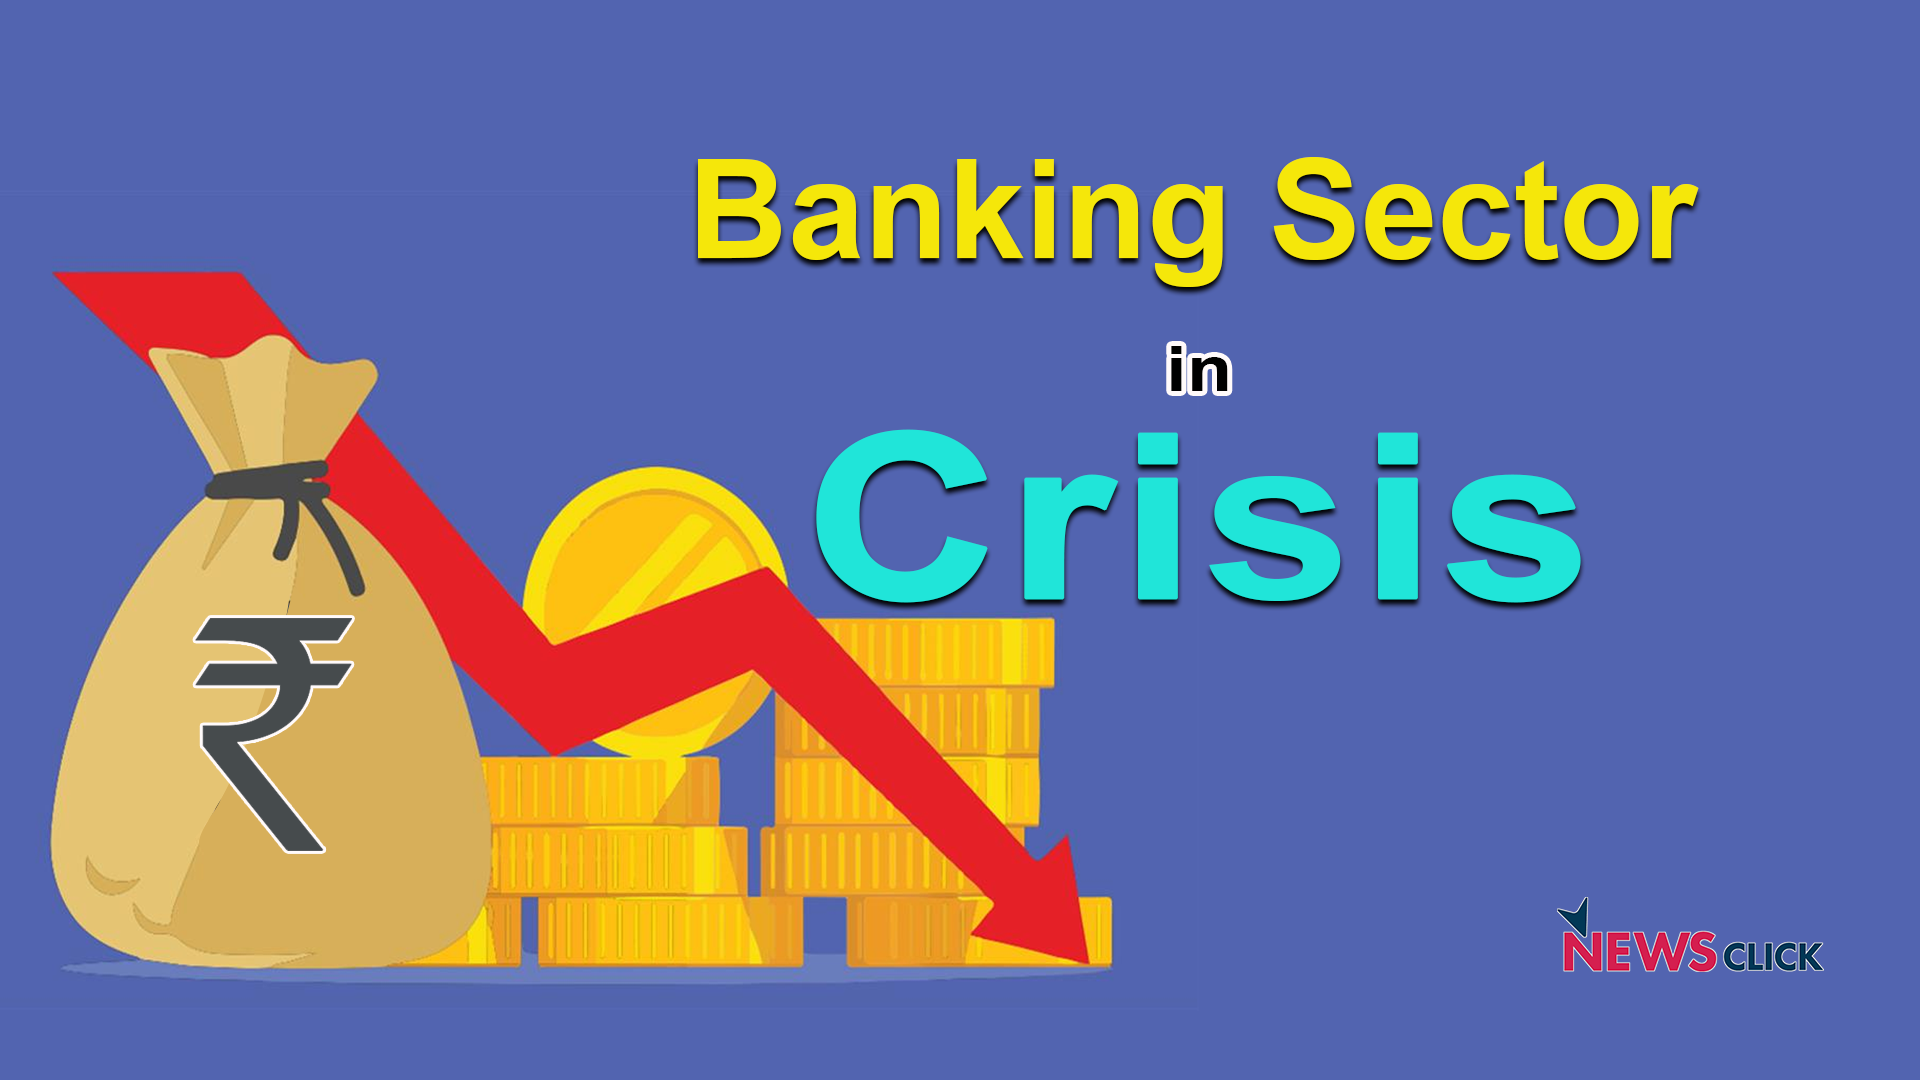 Banking Sector Crisis